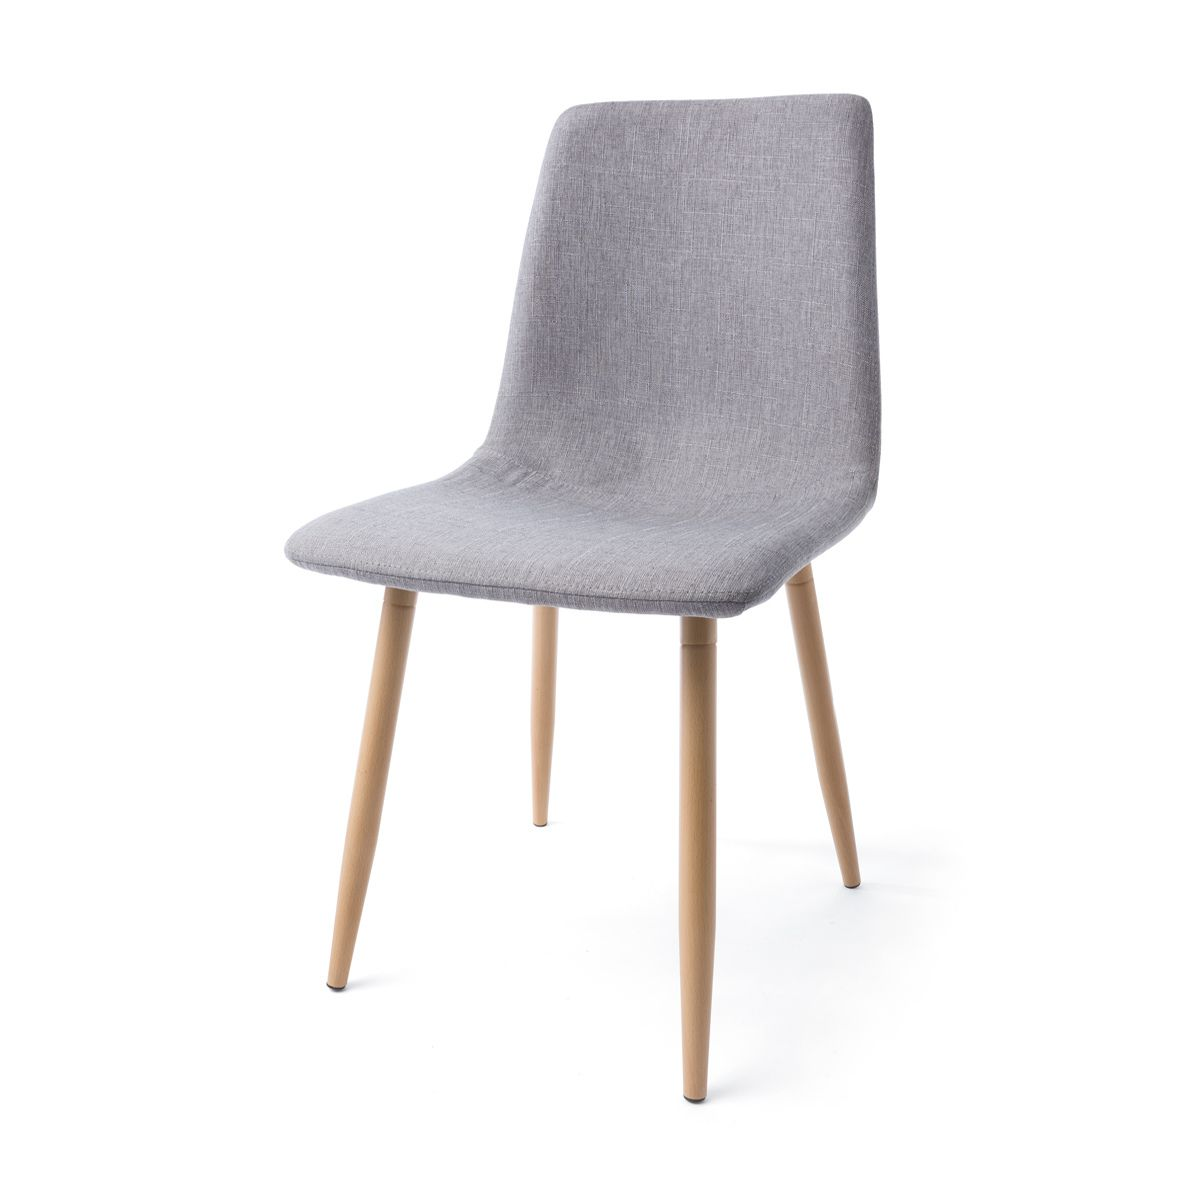 Gentil Upholstered Dining Chair | Kmart